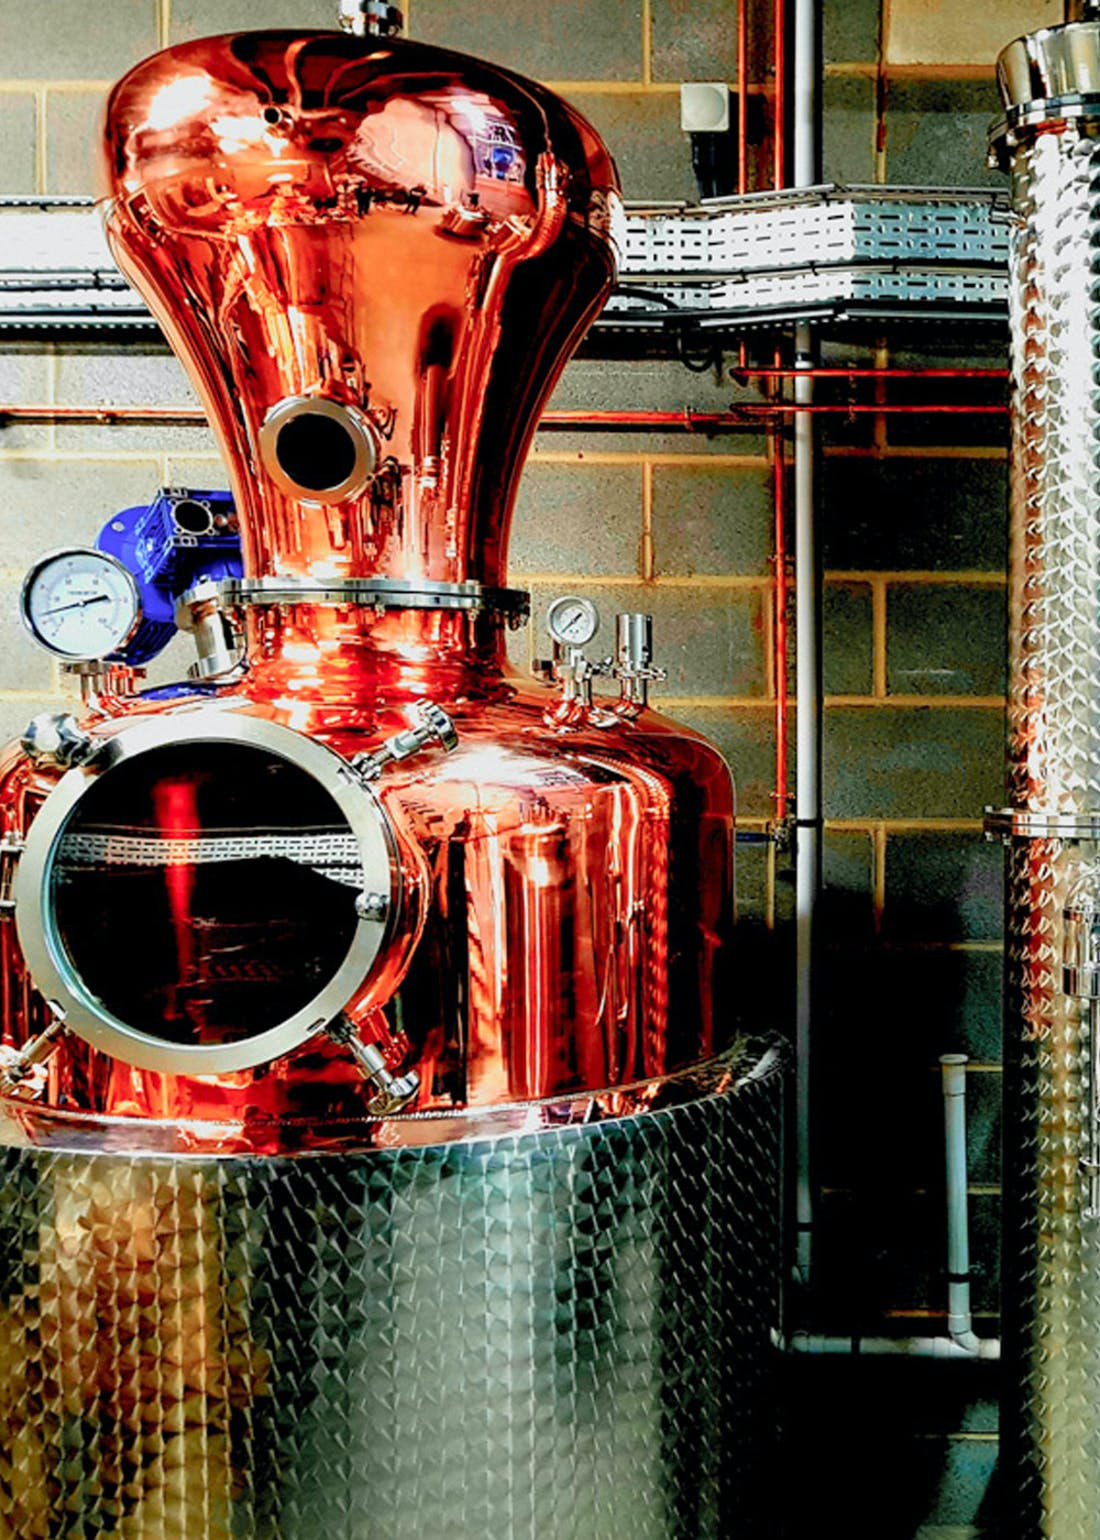 Virgin Experience Days Bottomley Gin Distillers Tour & Tasting for 2